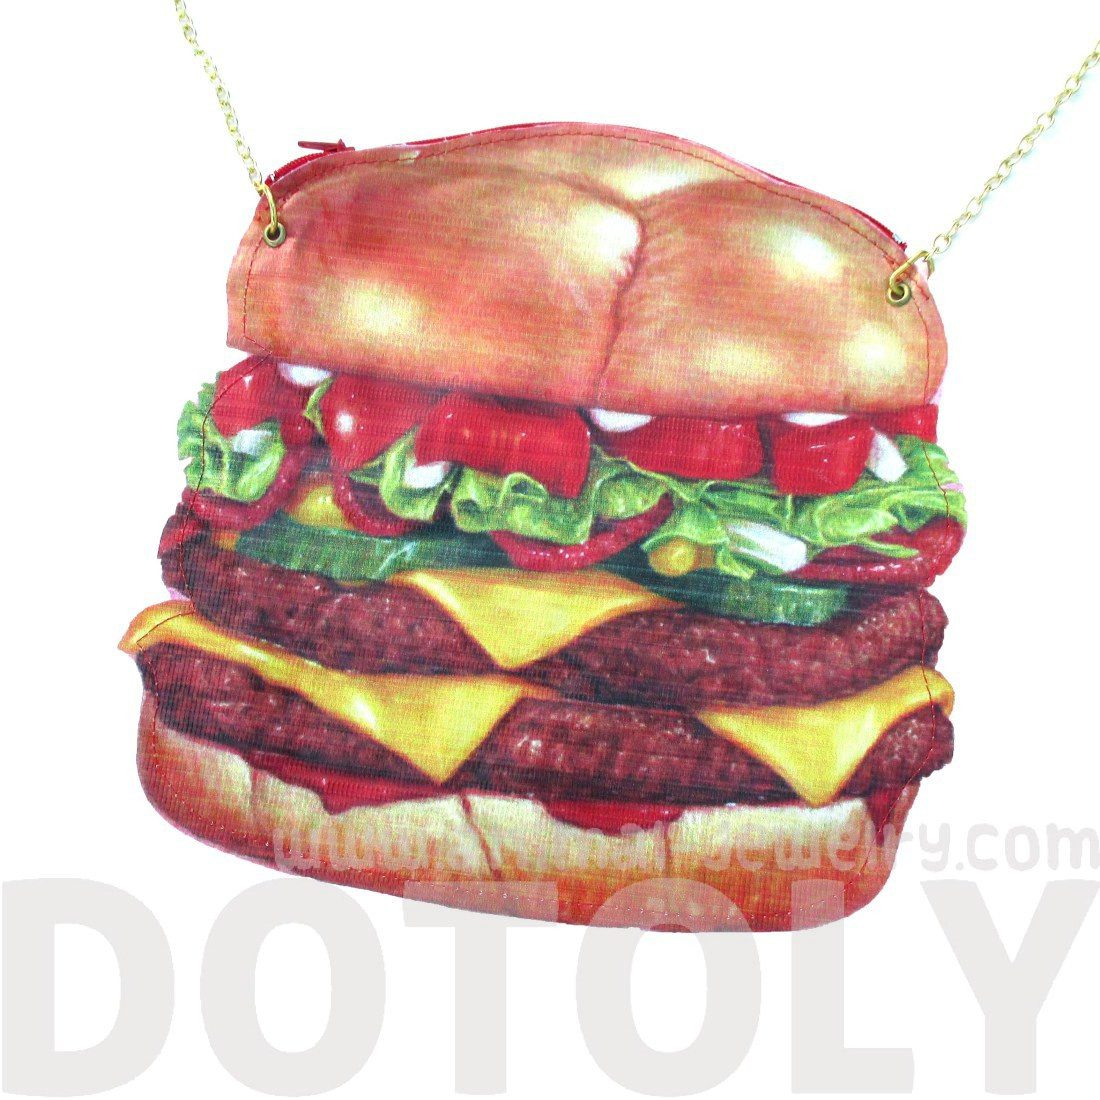 Realistic Double Cheeseburger Shaped Vinyl Cross Body Shoulder Bag